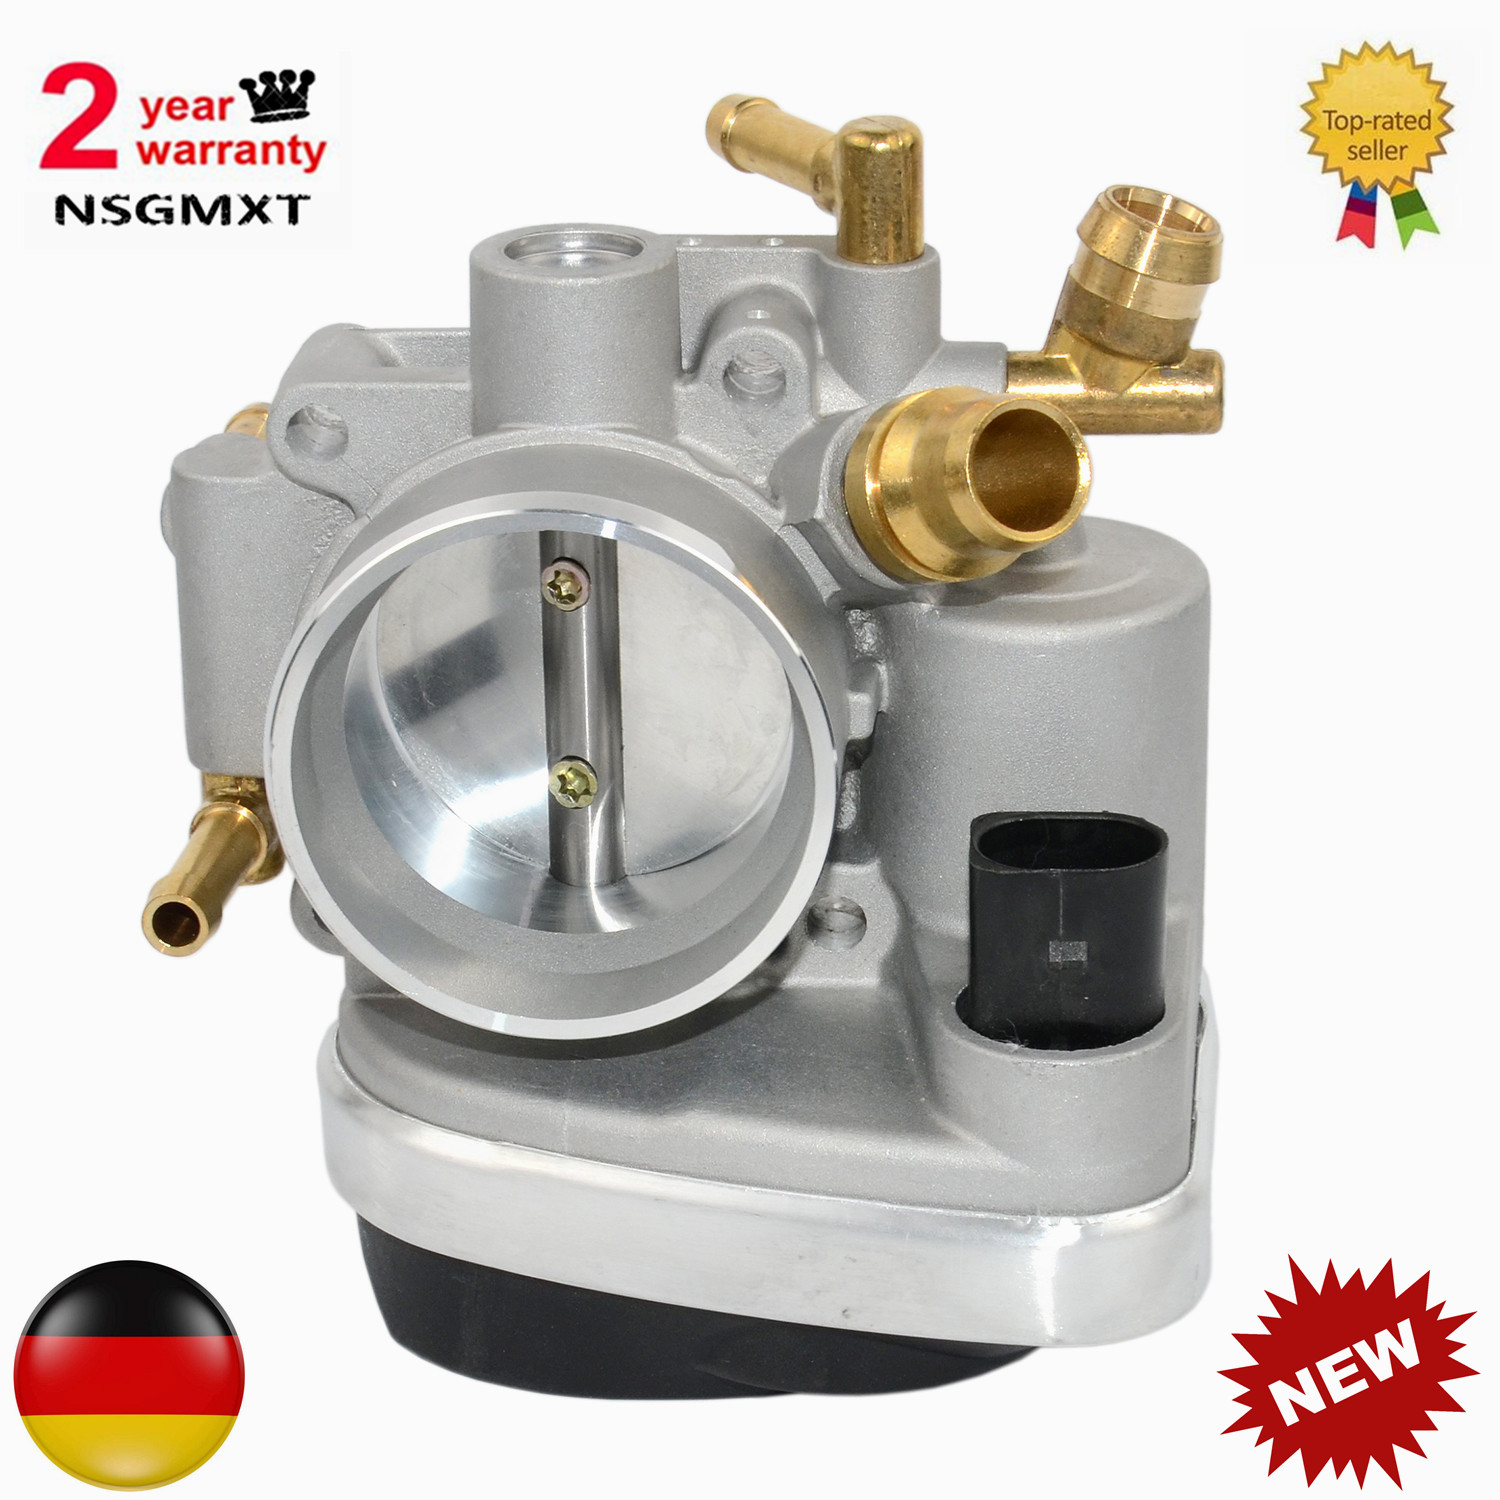 AP02 Throttle Body Assembly For Chevrolet Cruze/Opel Astra H Zafira B/Vauxhall Zafira MK2 Astra TwinTop Astravan MK5/VW EOS|assembly| |  - title=